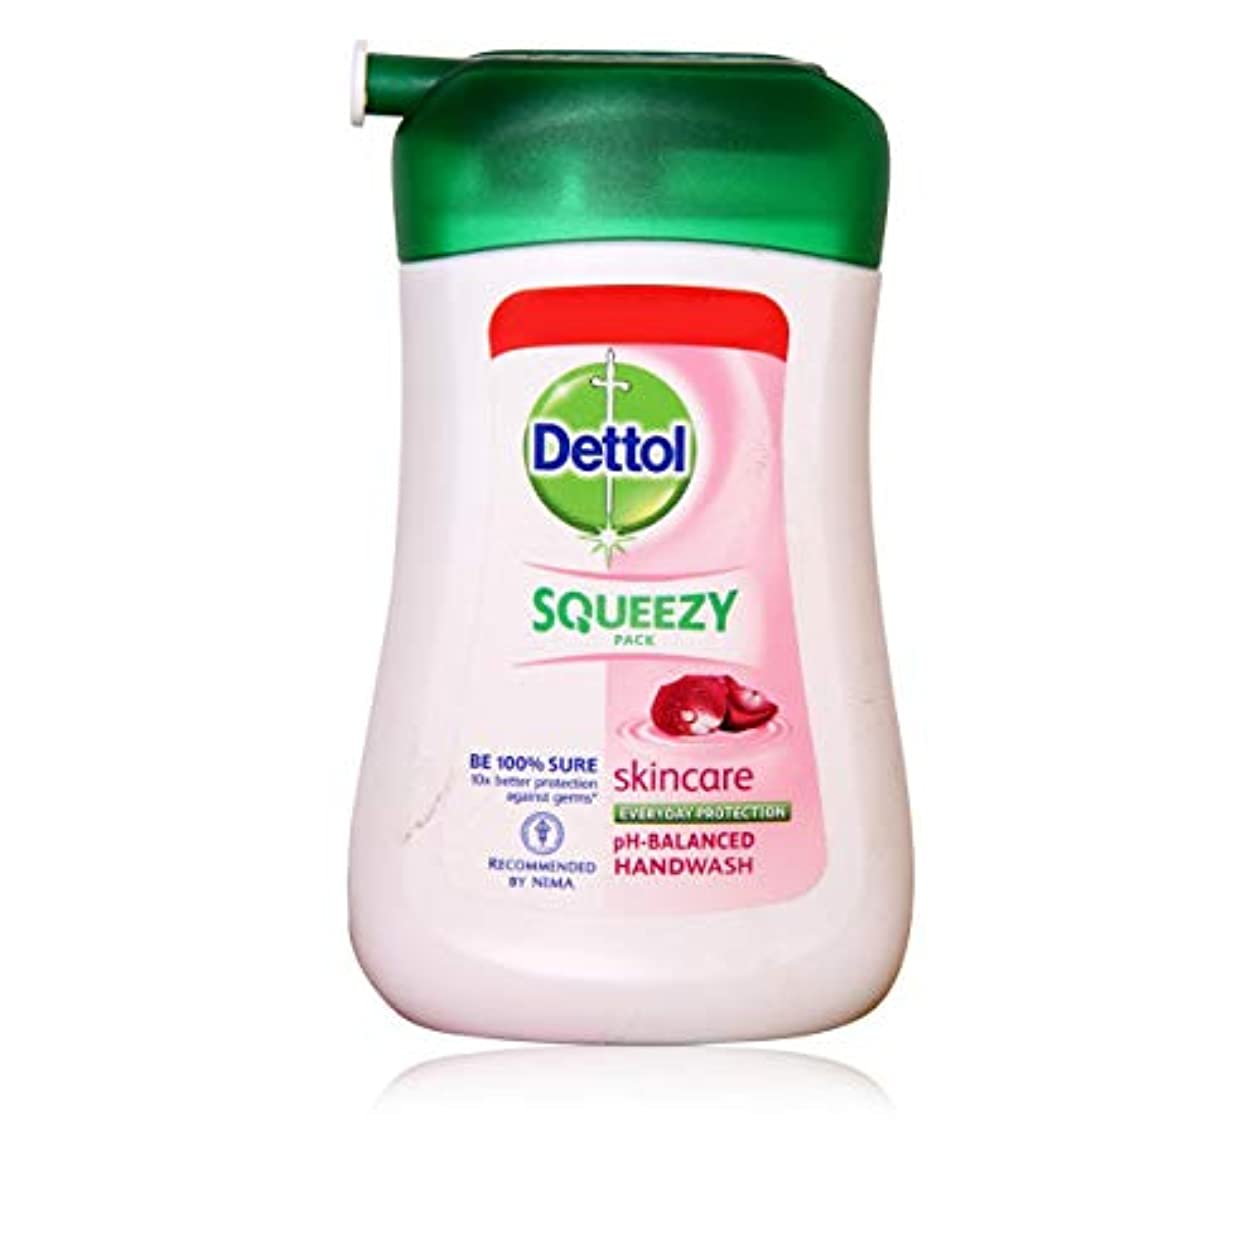 怒り目立つニコチンDETTOL Squeezy Pack Skincare Liquid Hand WASH 100ML